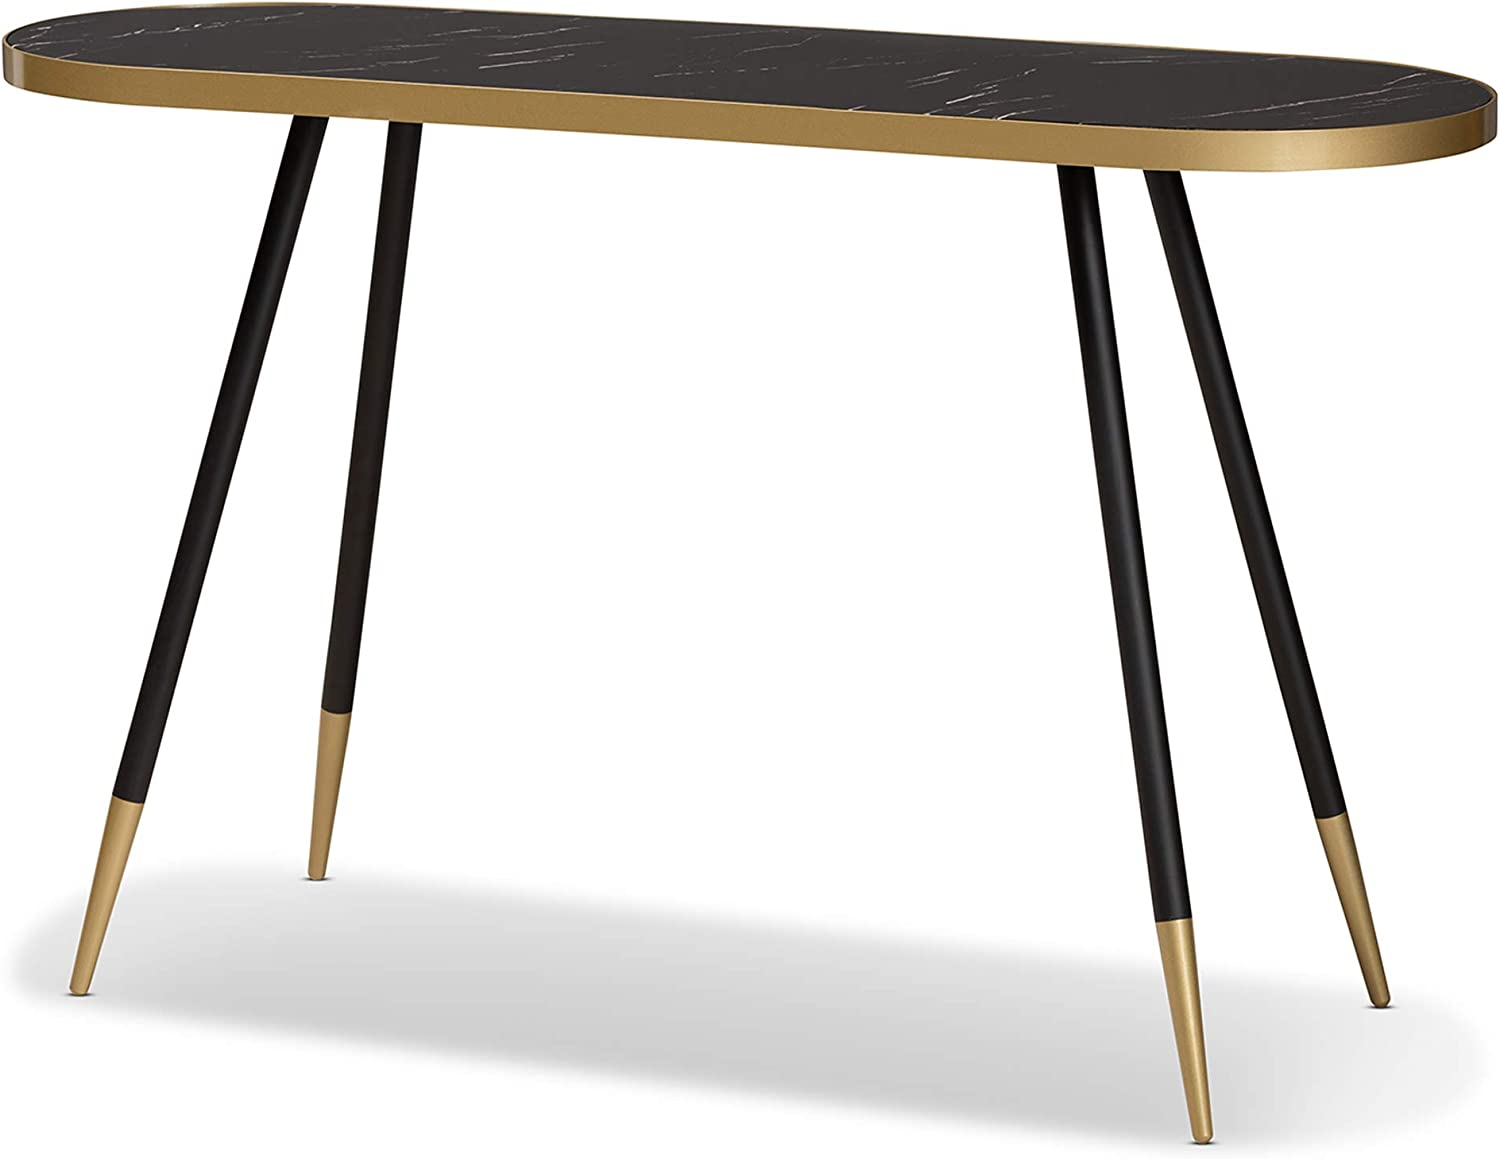 Max 70% OFF Baxton Studio Console Black Gold Tables Our shop most popular